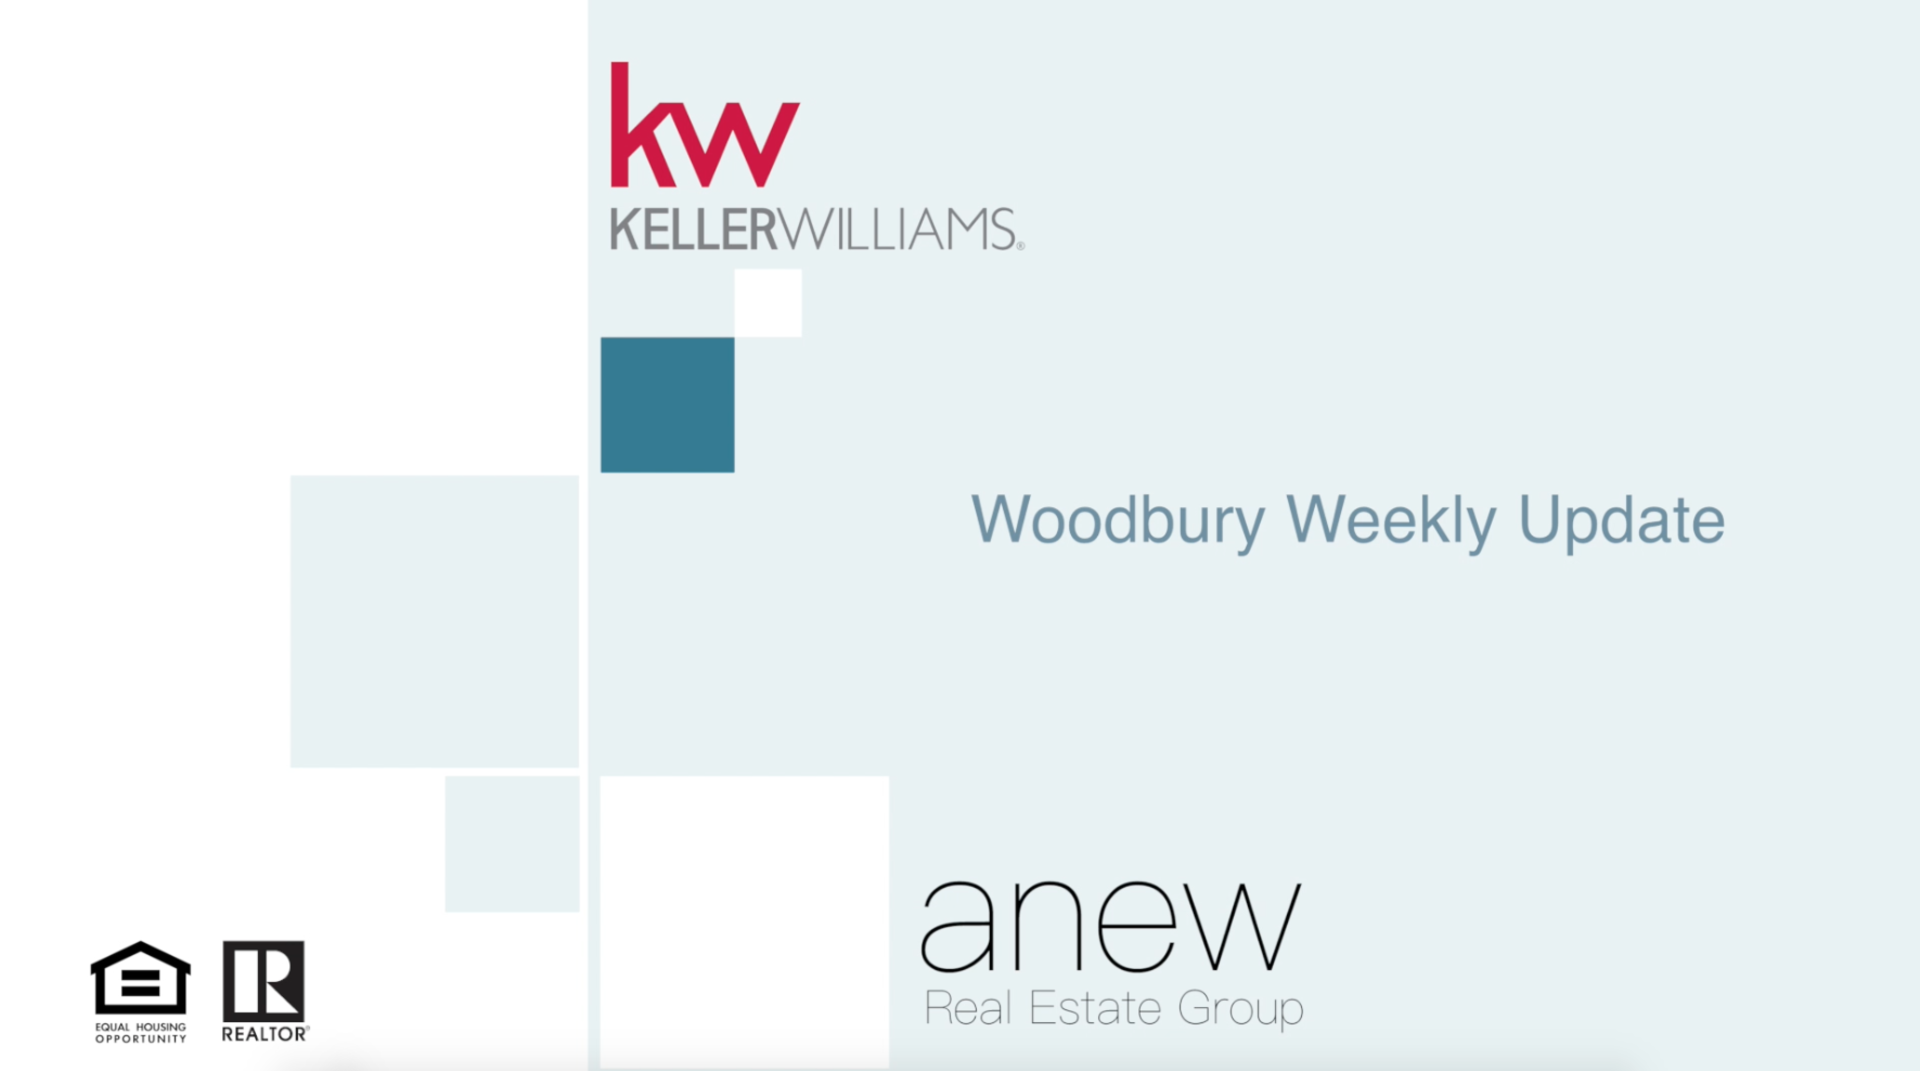 Woodbury Weekly Update for July 16th, 2018